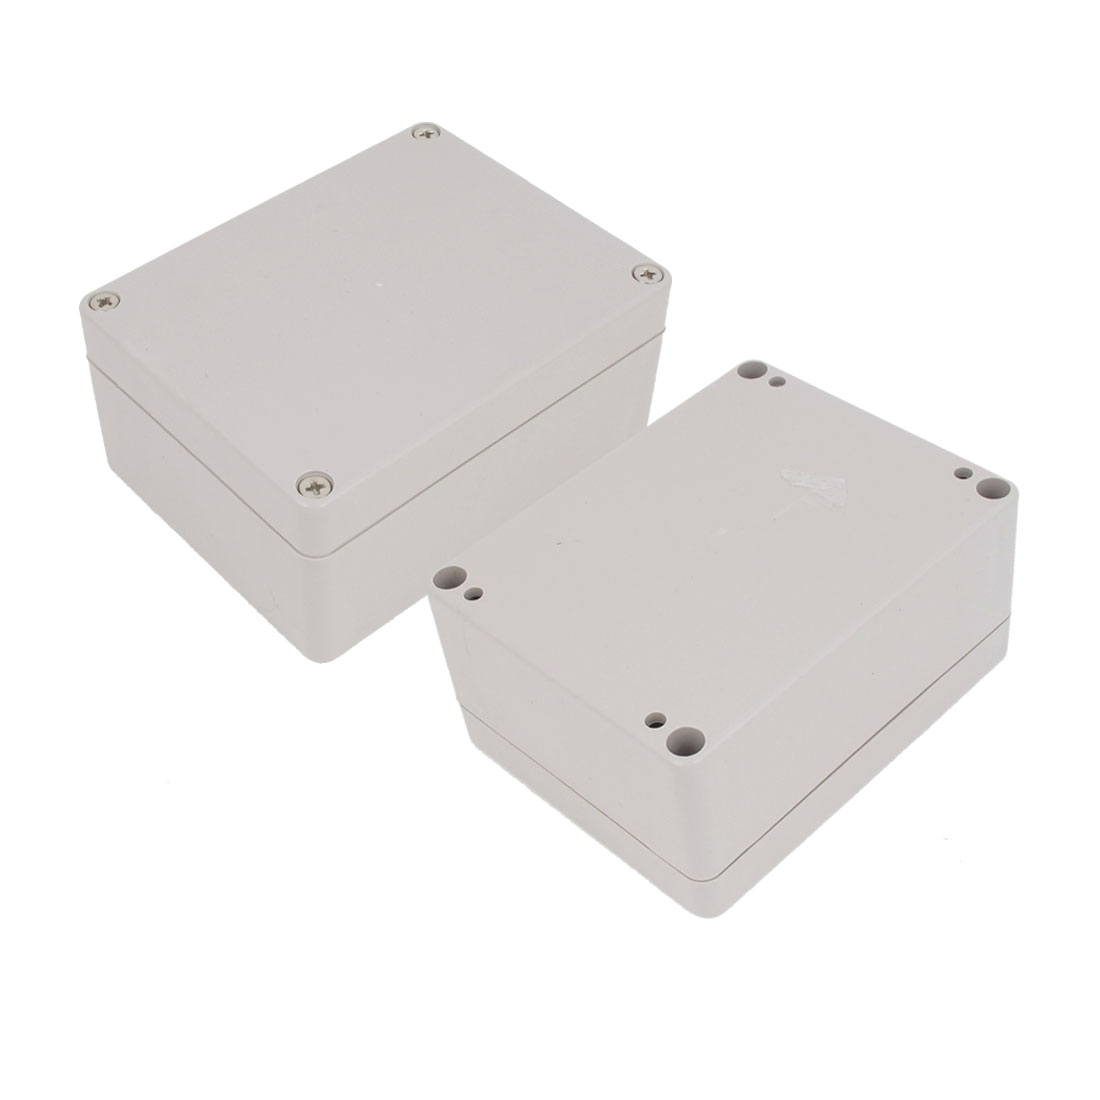 2 Pcs Plastic Mounted Power Protective Case Junction Box 114 x 88 x 54mm